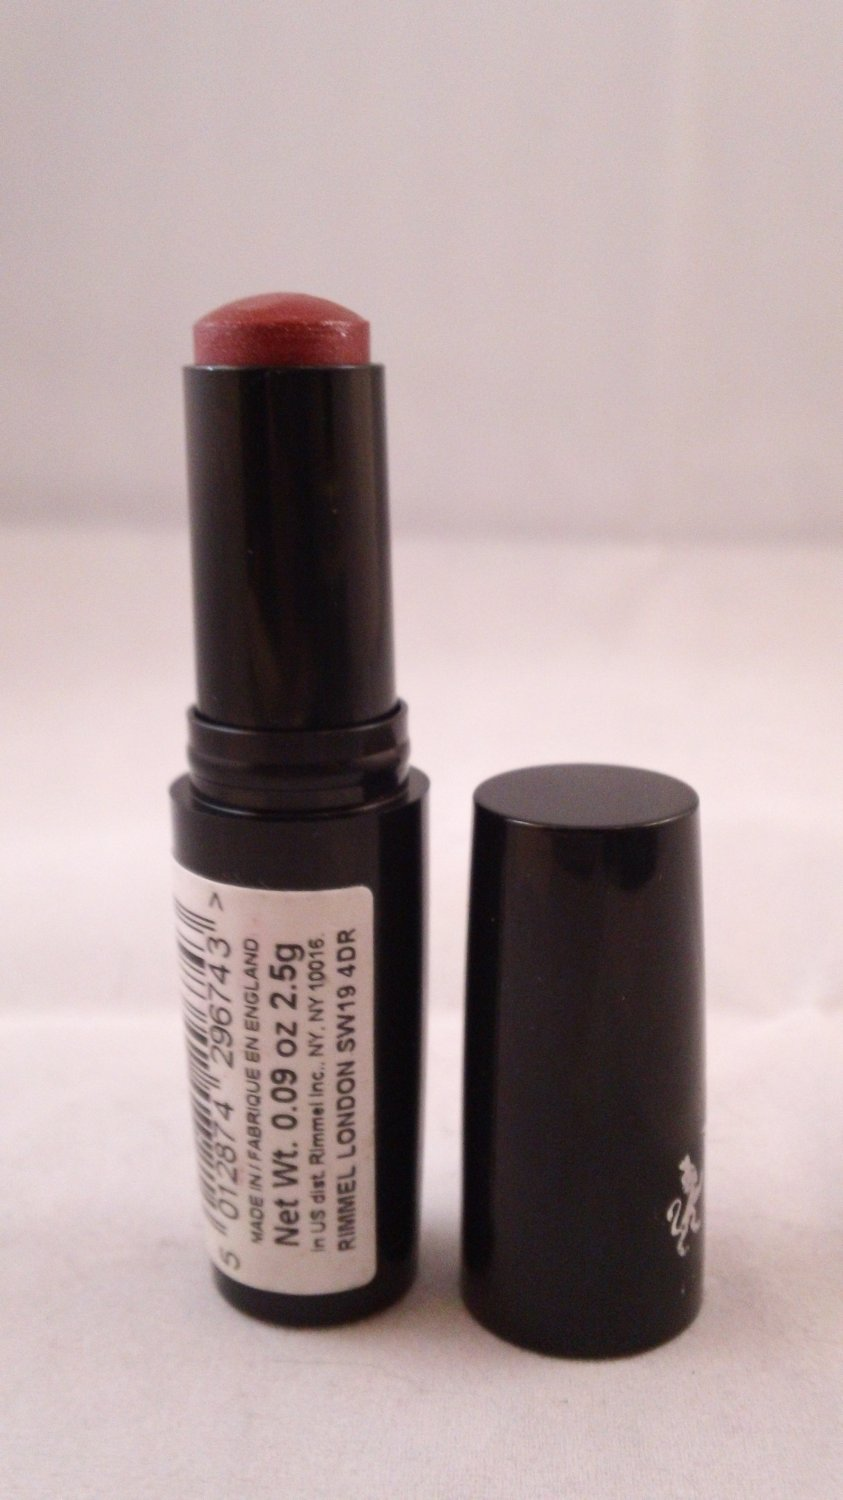 Rimmel London Sweet Stuff Lipstick #410 Cabaret